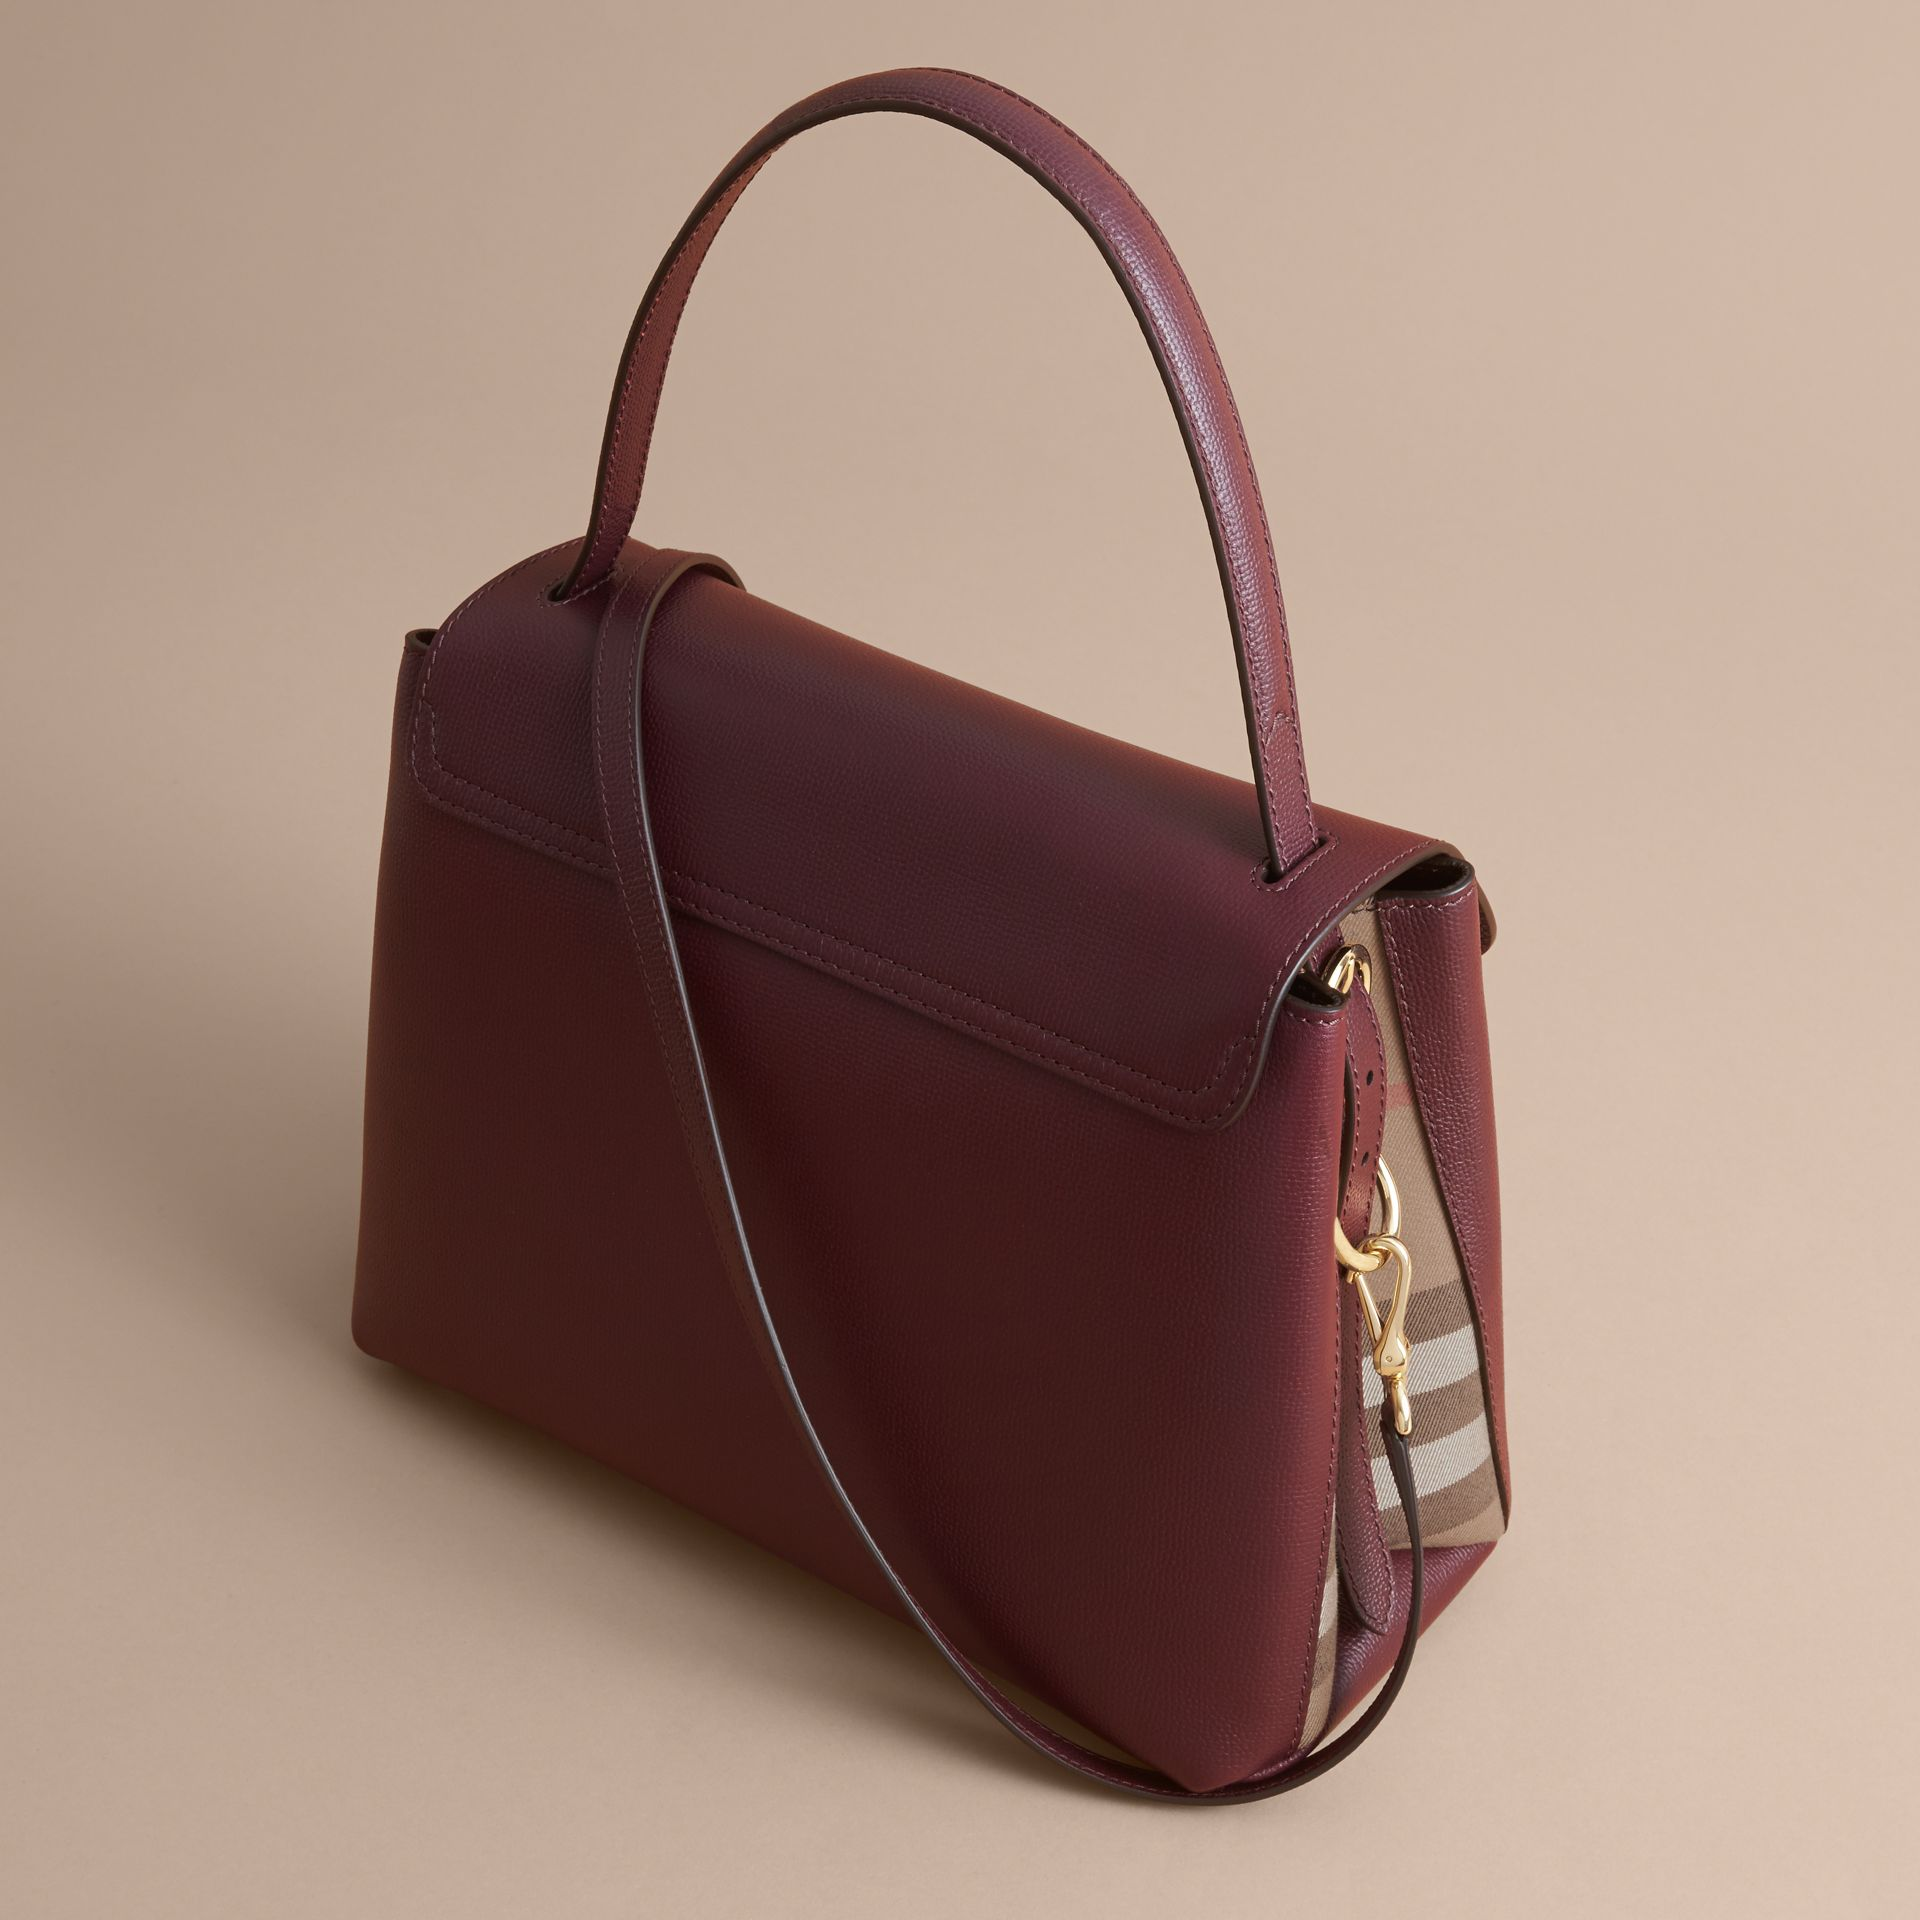 Medium Grainy Leather and House Check Tote Bag in Mahogany Red - Women | Burberry Hong Kong - gallery image 5